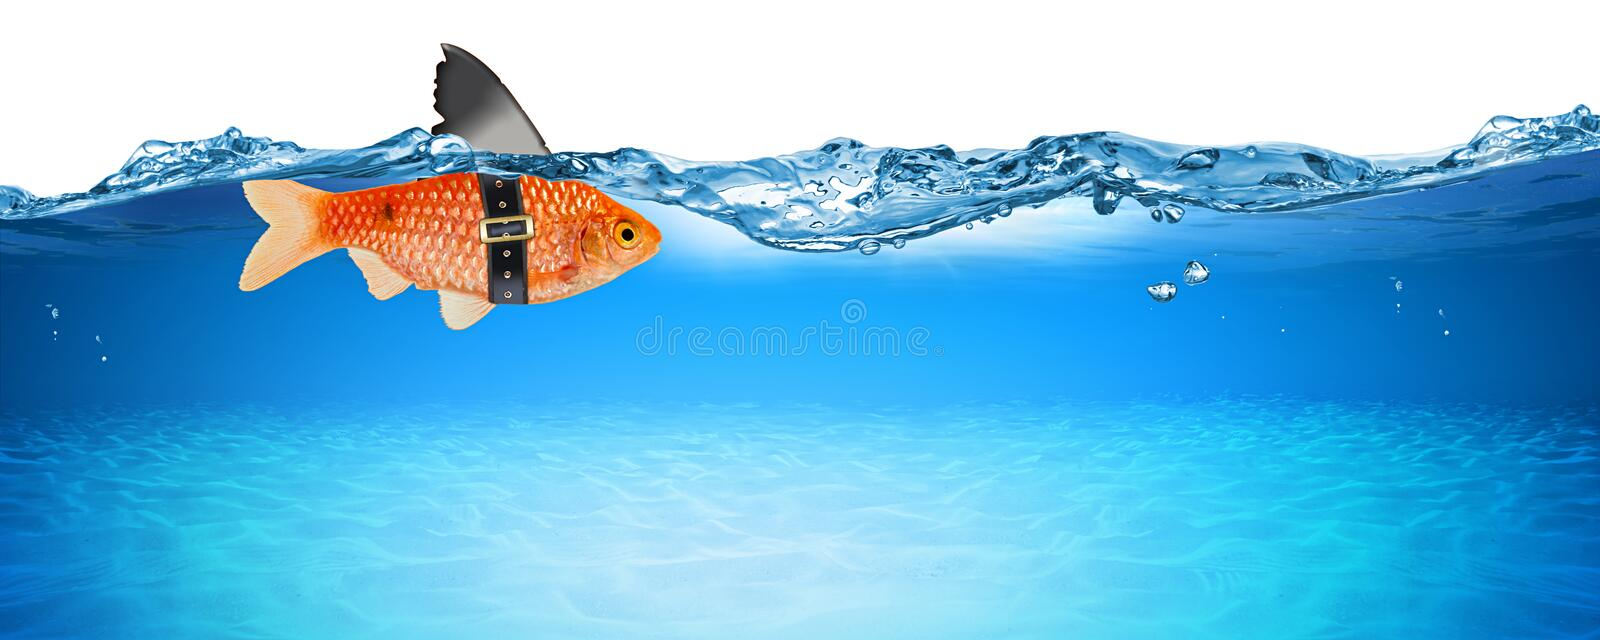 Goldfish with fake shark fin creative business idea innovation concept isolated. On blue panorama underwater background royalty free stock photography